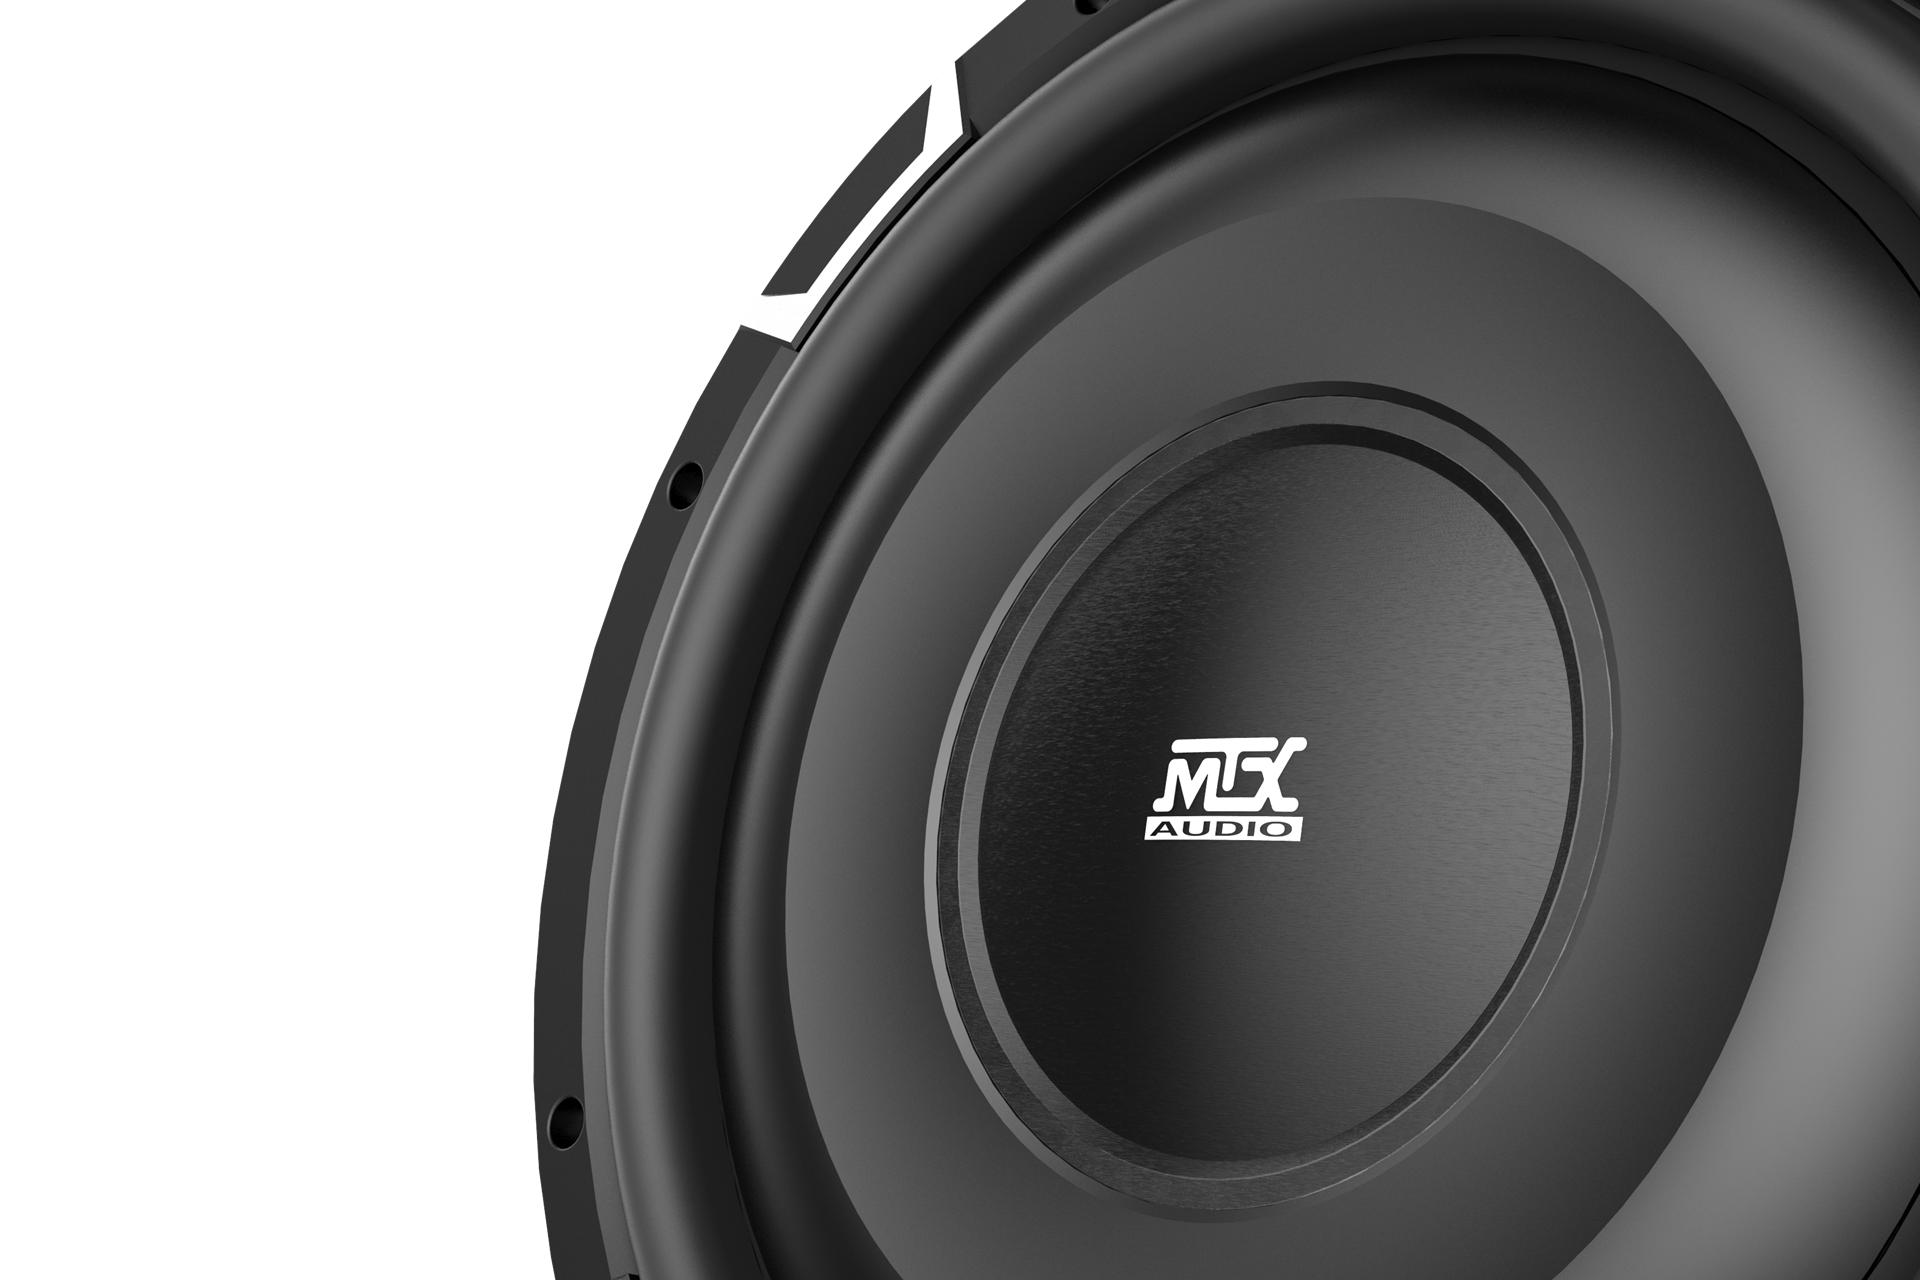 Fpr12 02 12 Shallow Mount Fpr Series 2 Ohm Single Voice Coil Subwoofer Additionally 4 Dual Sub Wiring On Subwoofers Mtx Audio Serious About Sound